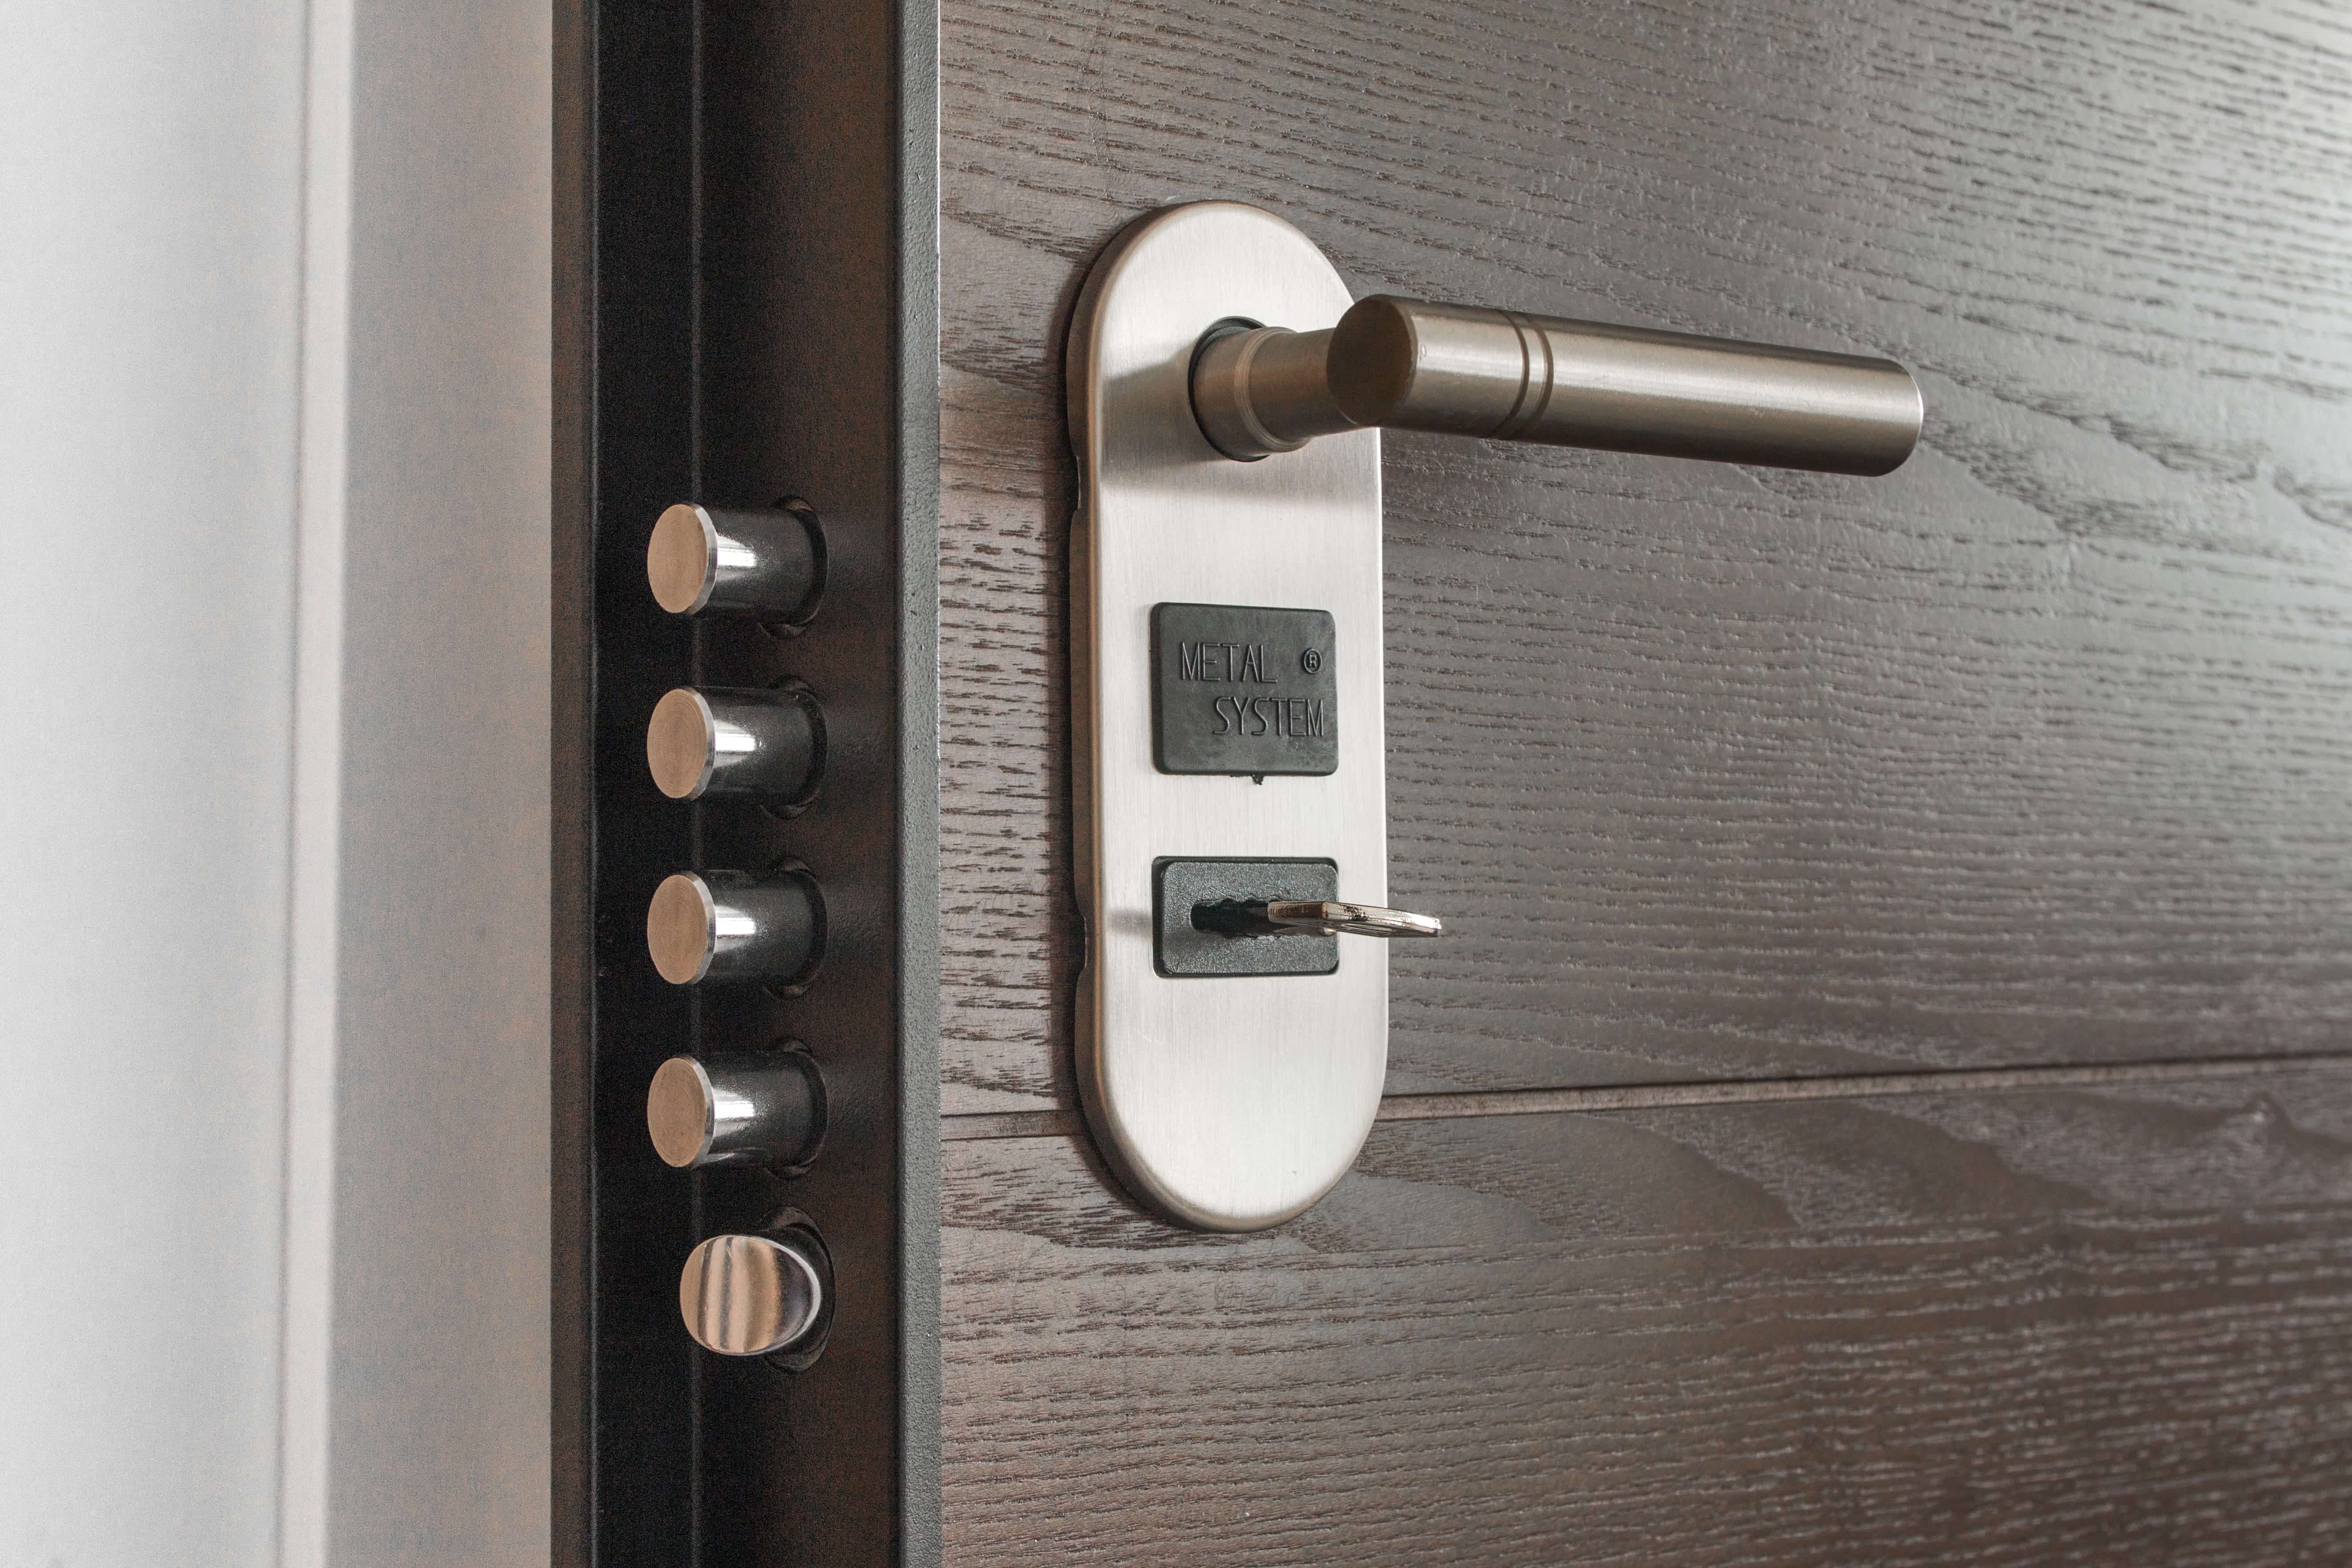 Deadbolt lock with key in hole; image by Pixabay, via Pexels.com.